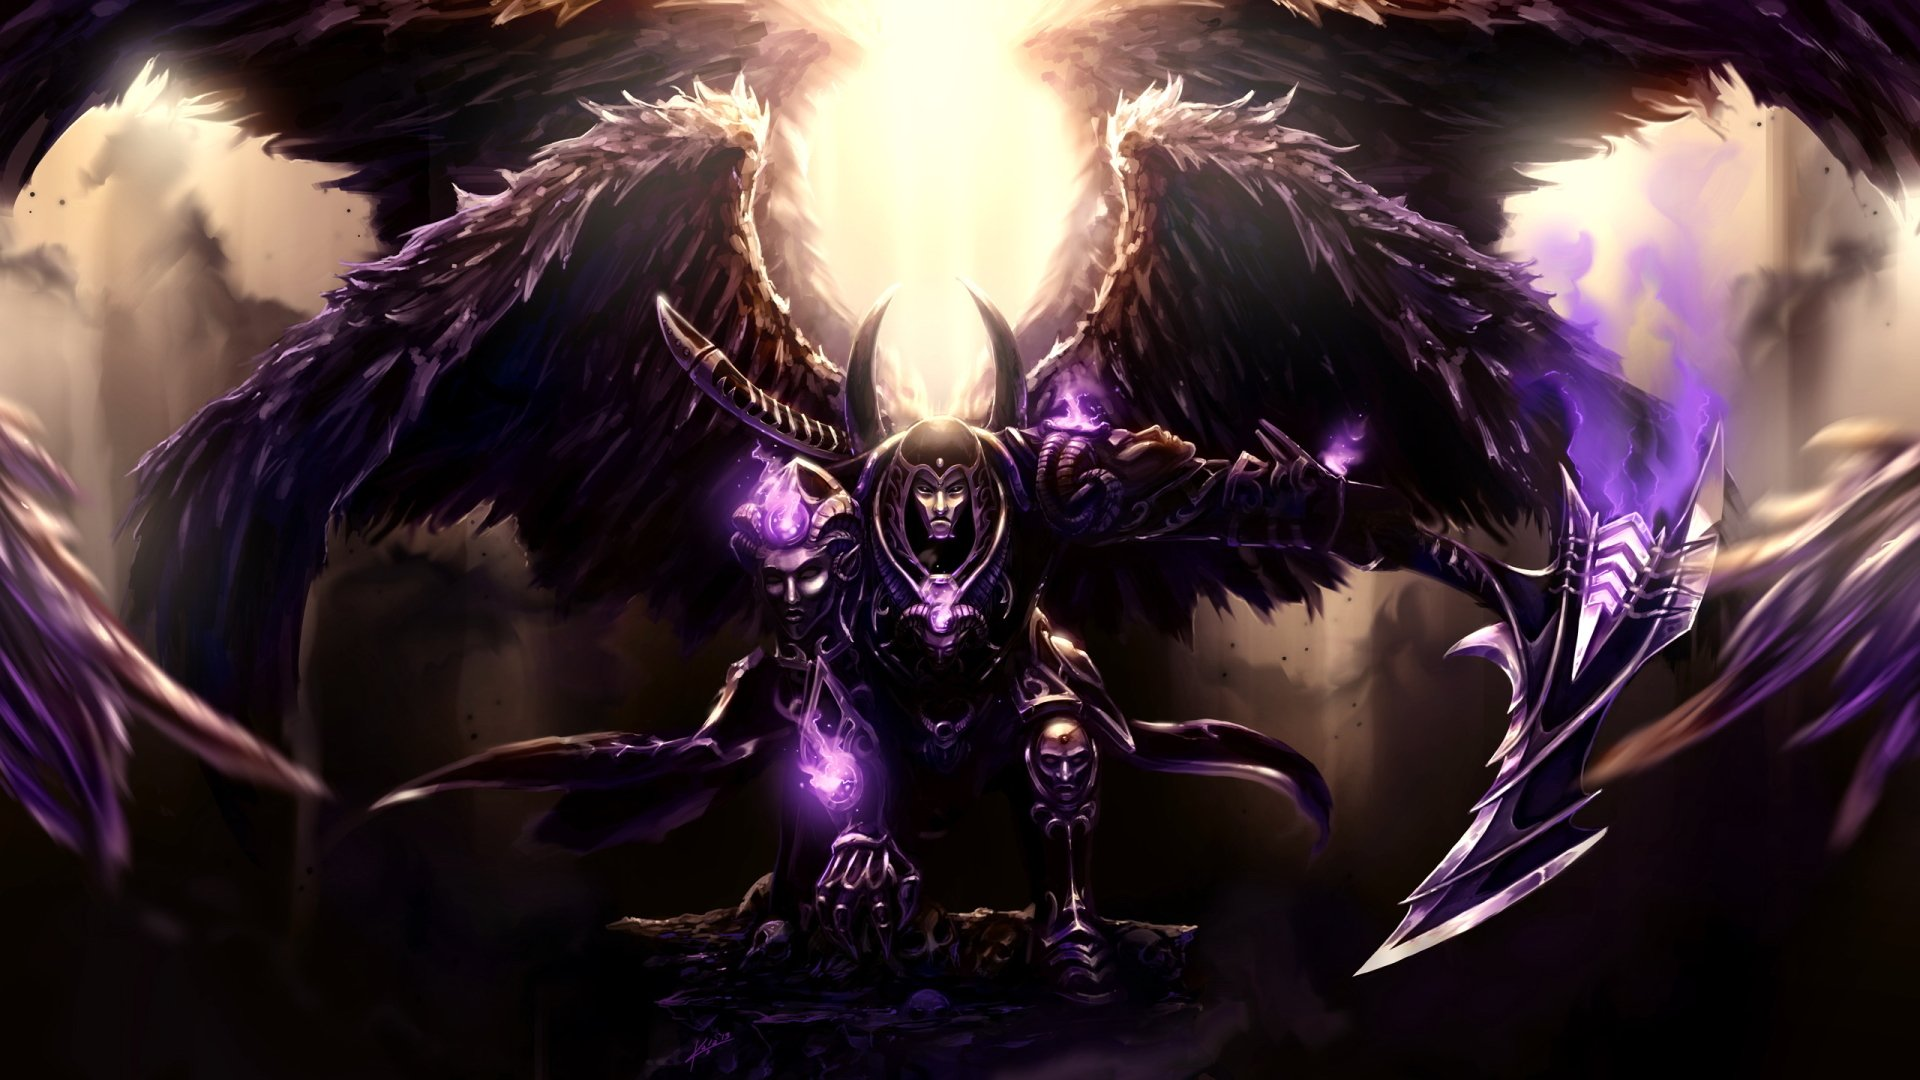 797 Smite Hd Wallpapers Background Images Wallpaper Abyss